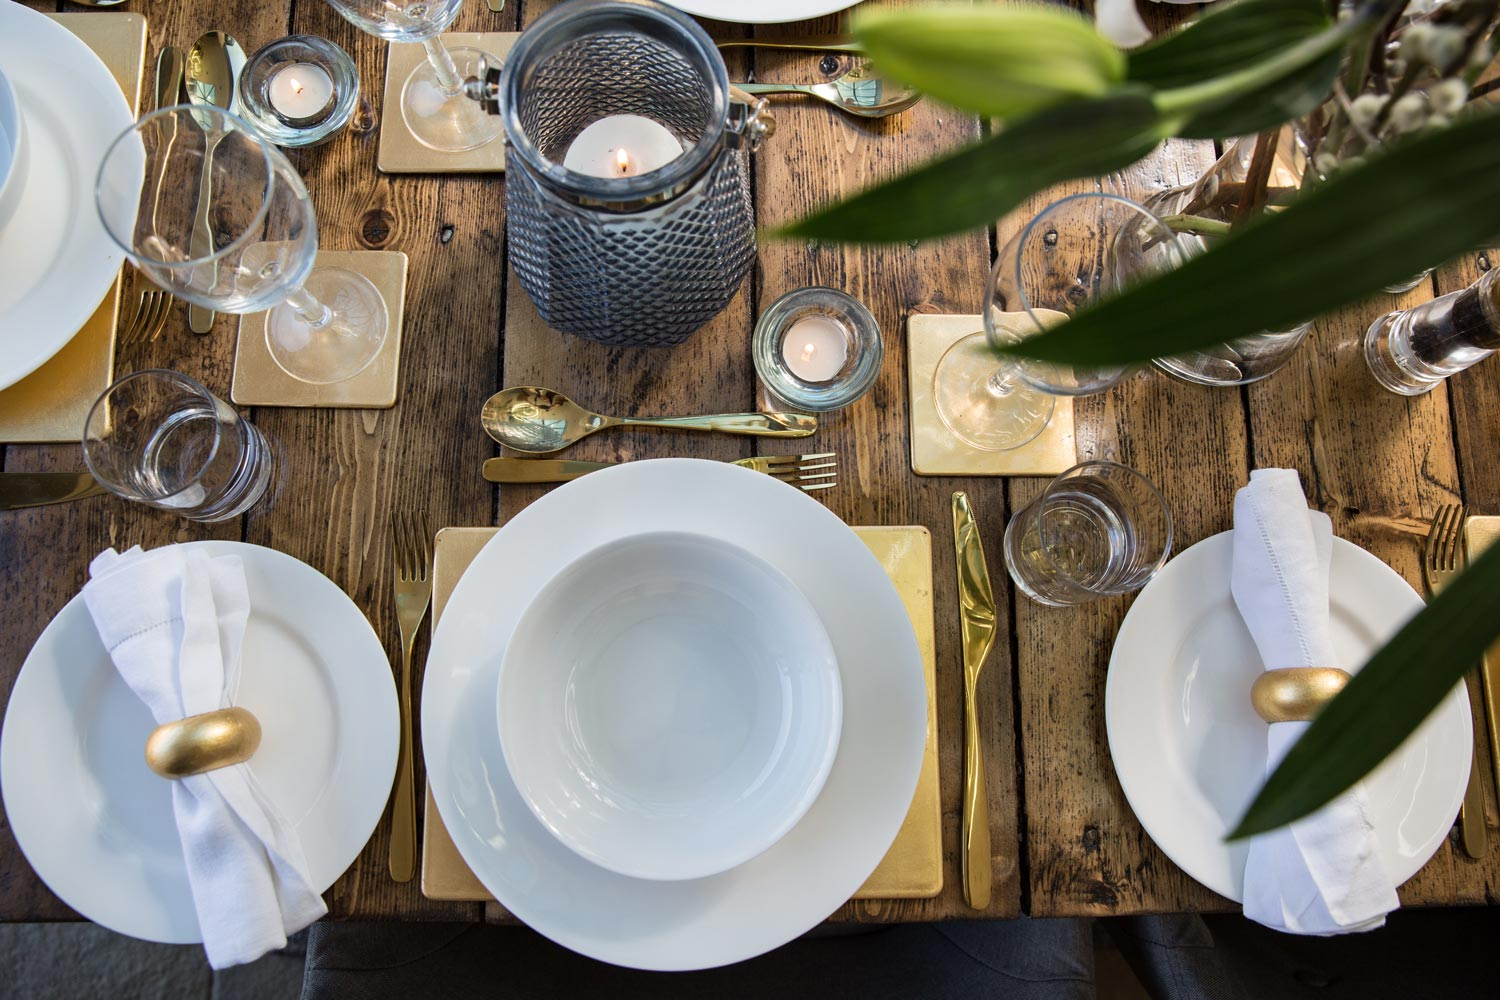 Stunning tableware for guests use